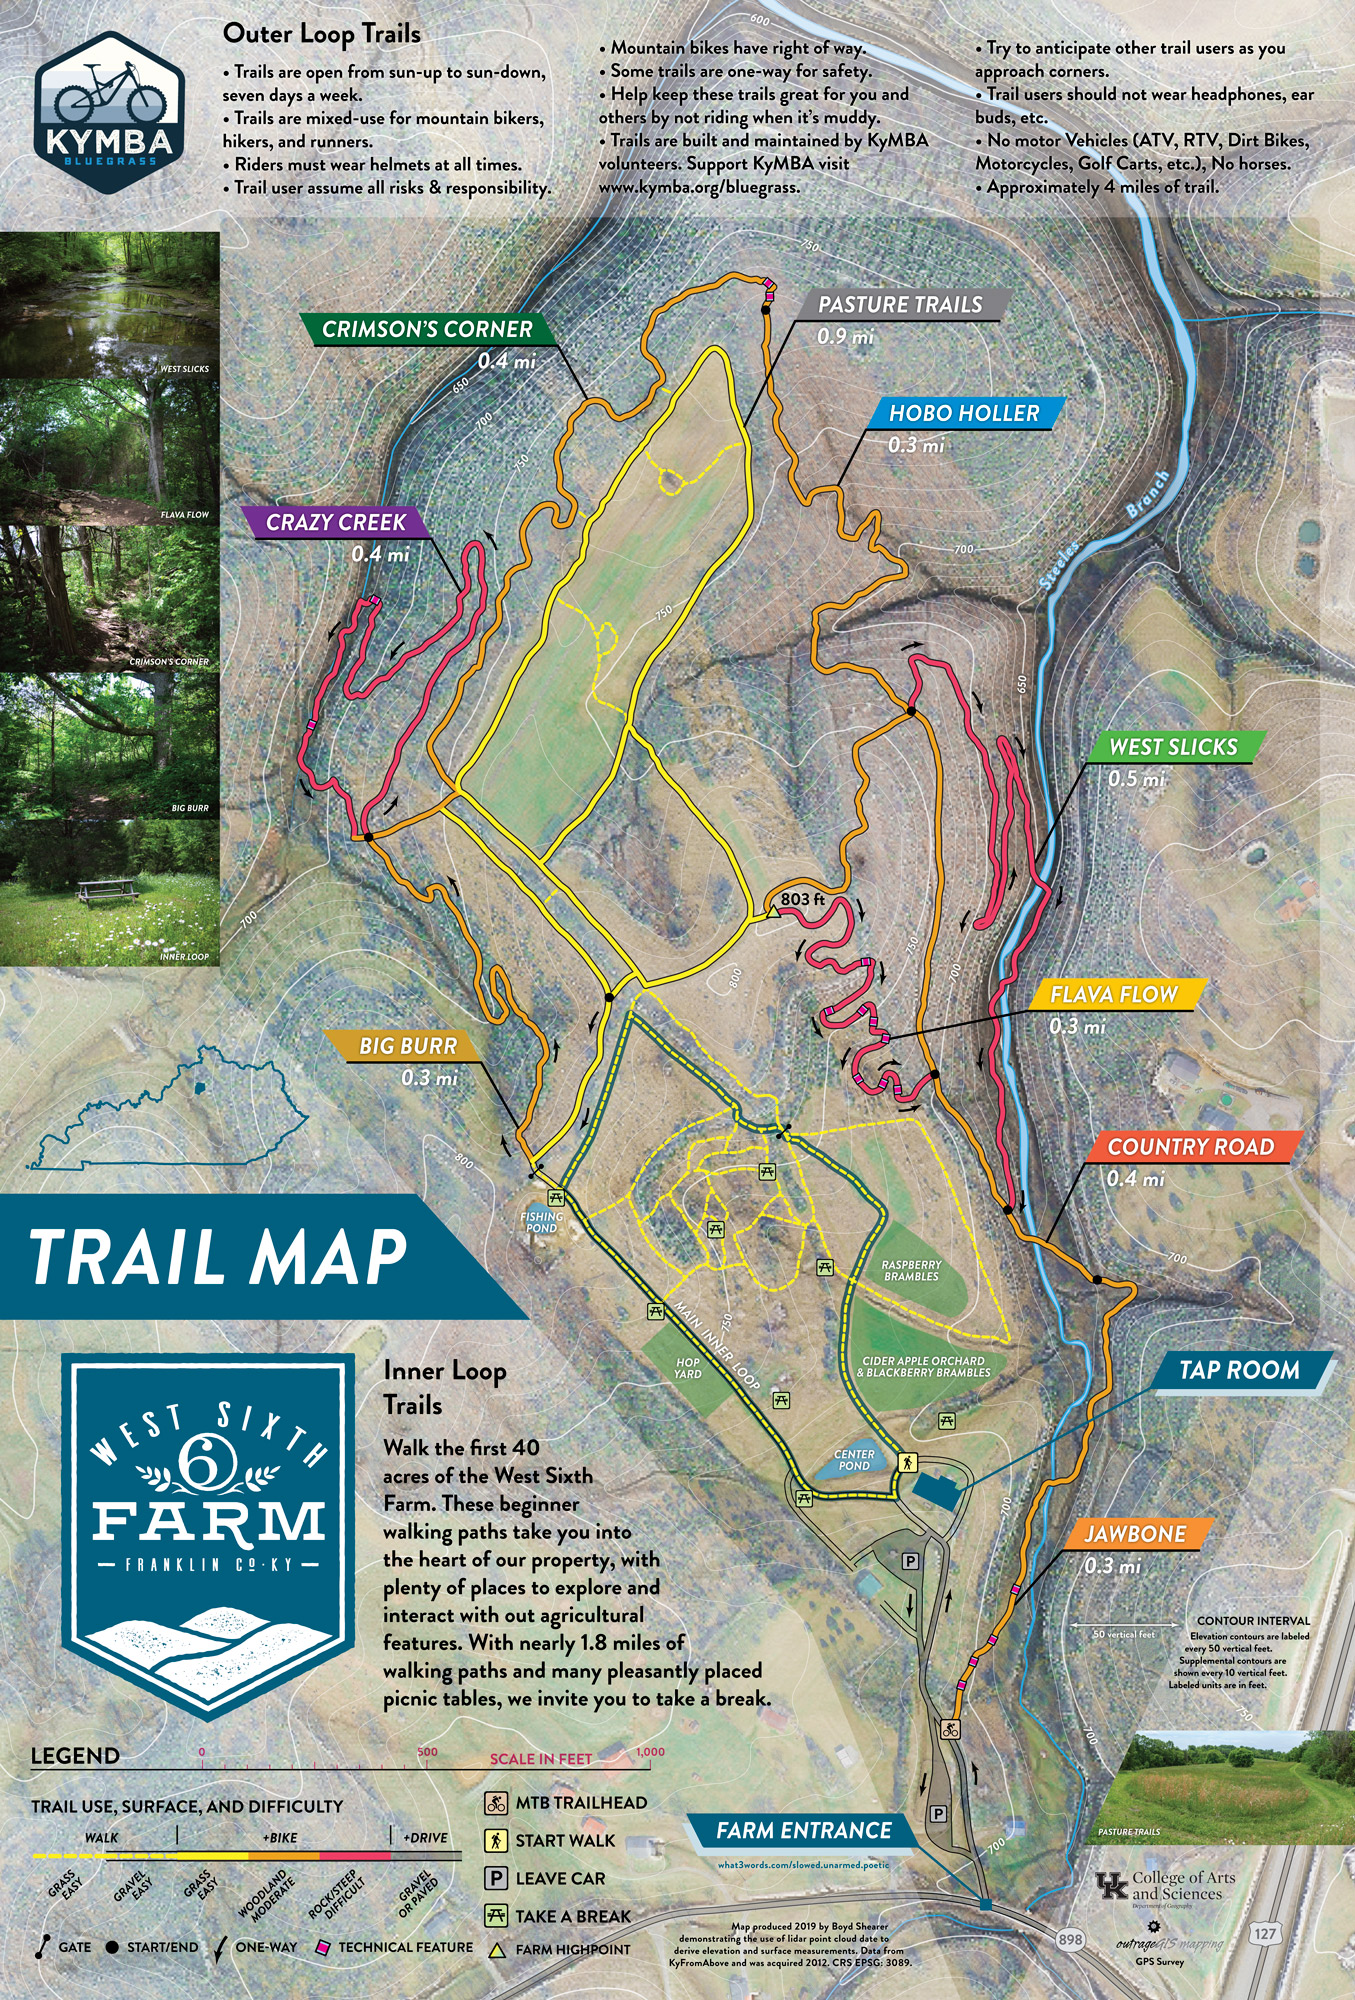 West Sixth Farm trail map